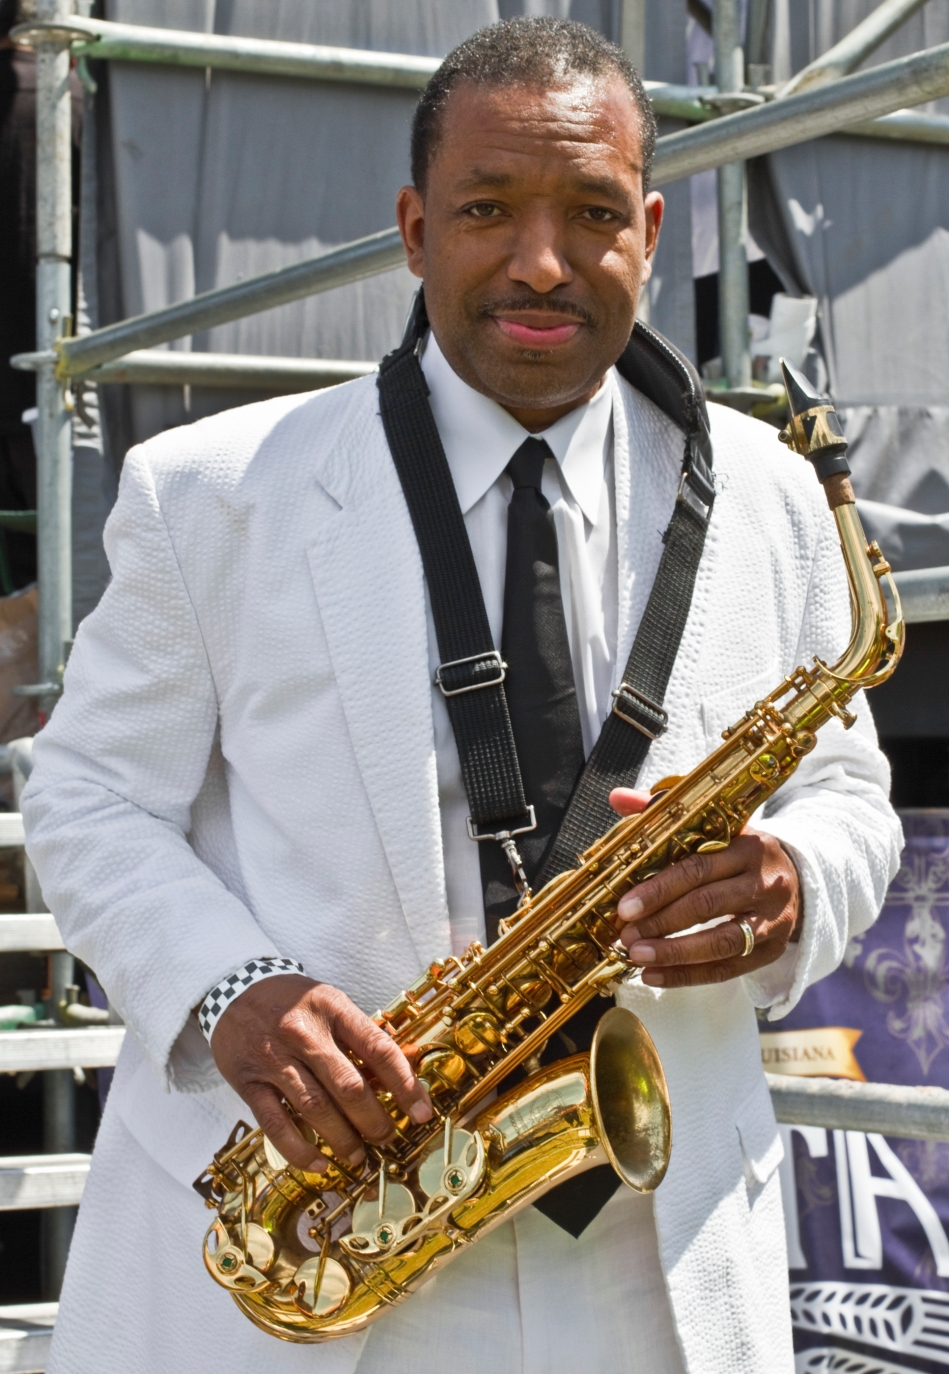 Donald Harrison, Jr. at French Quarter fest April 13, 2013 in New Orleans, LA